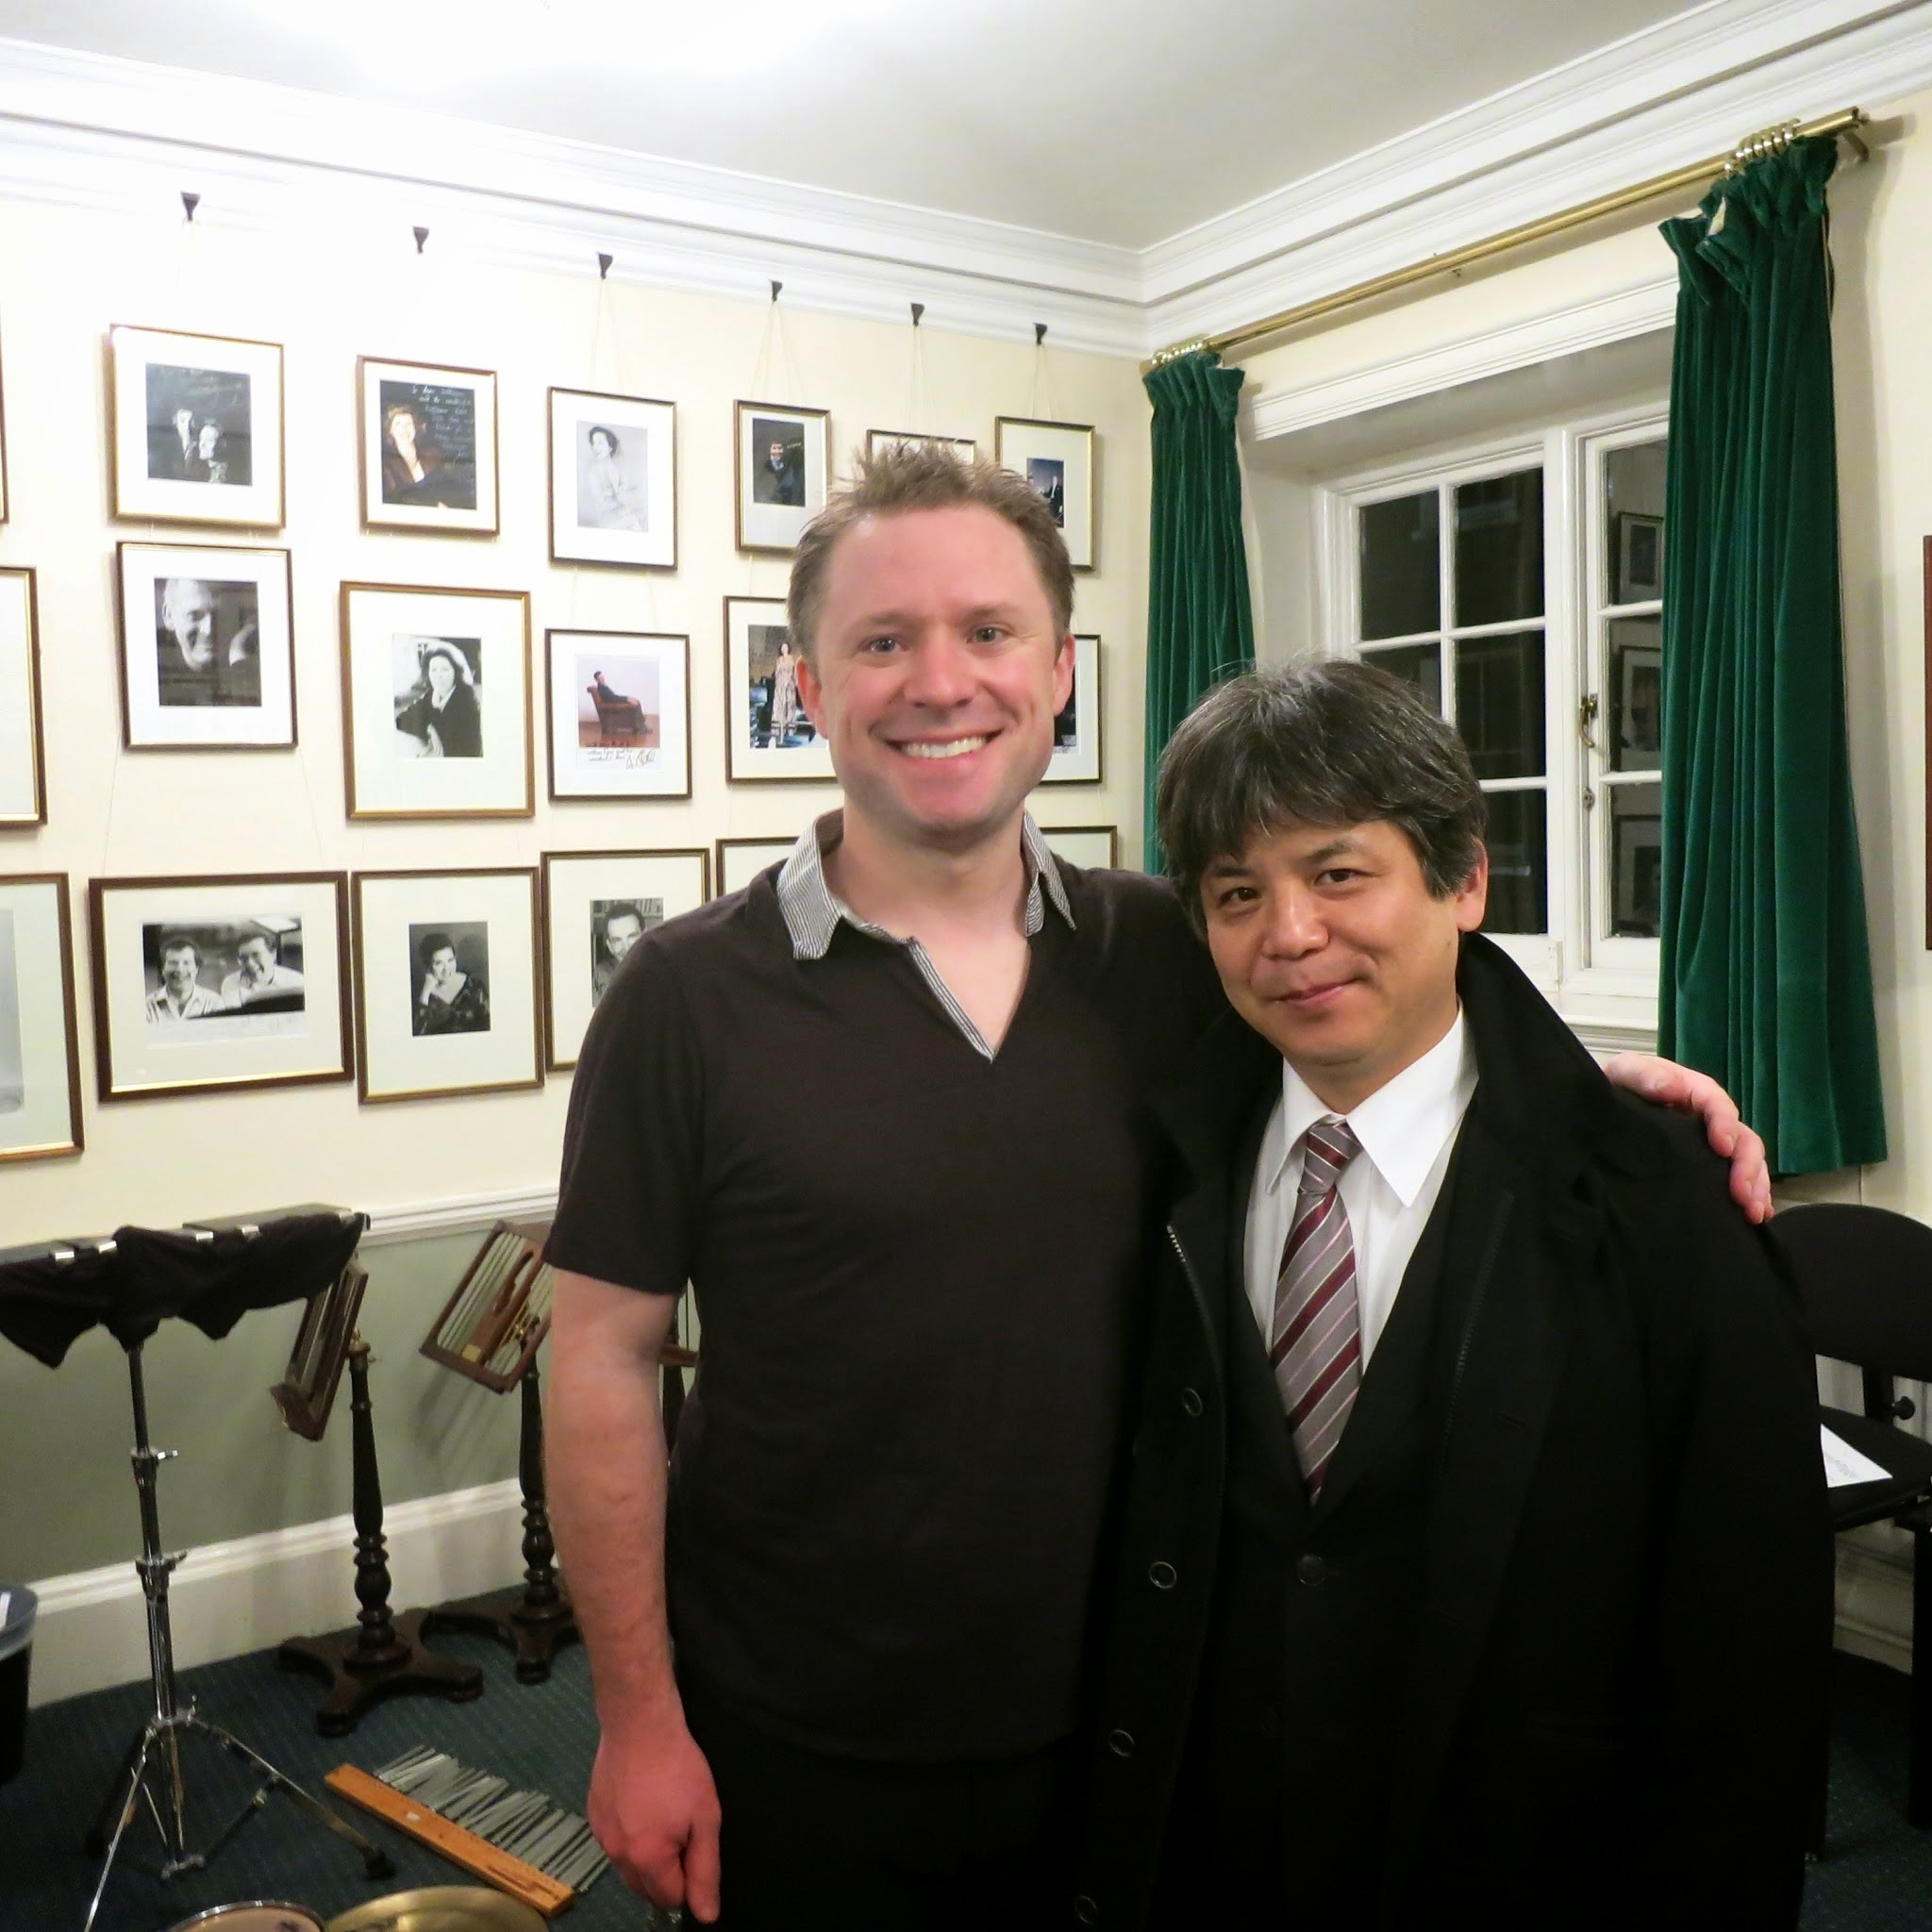 With Toshio Hosokawa at London's Wigmore Hall following my solo recital debut there.